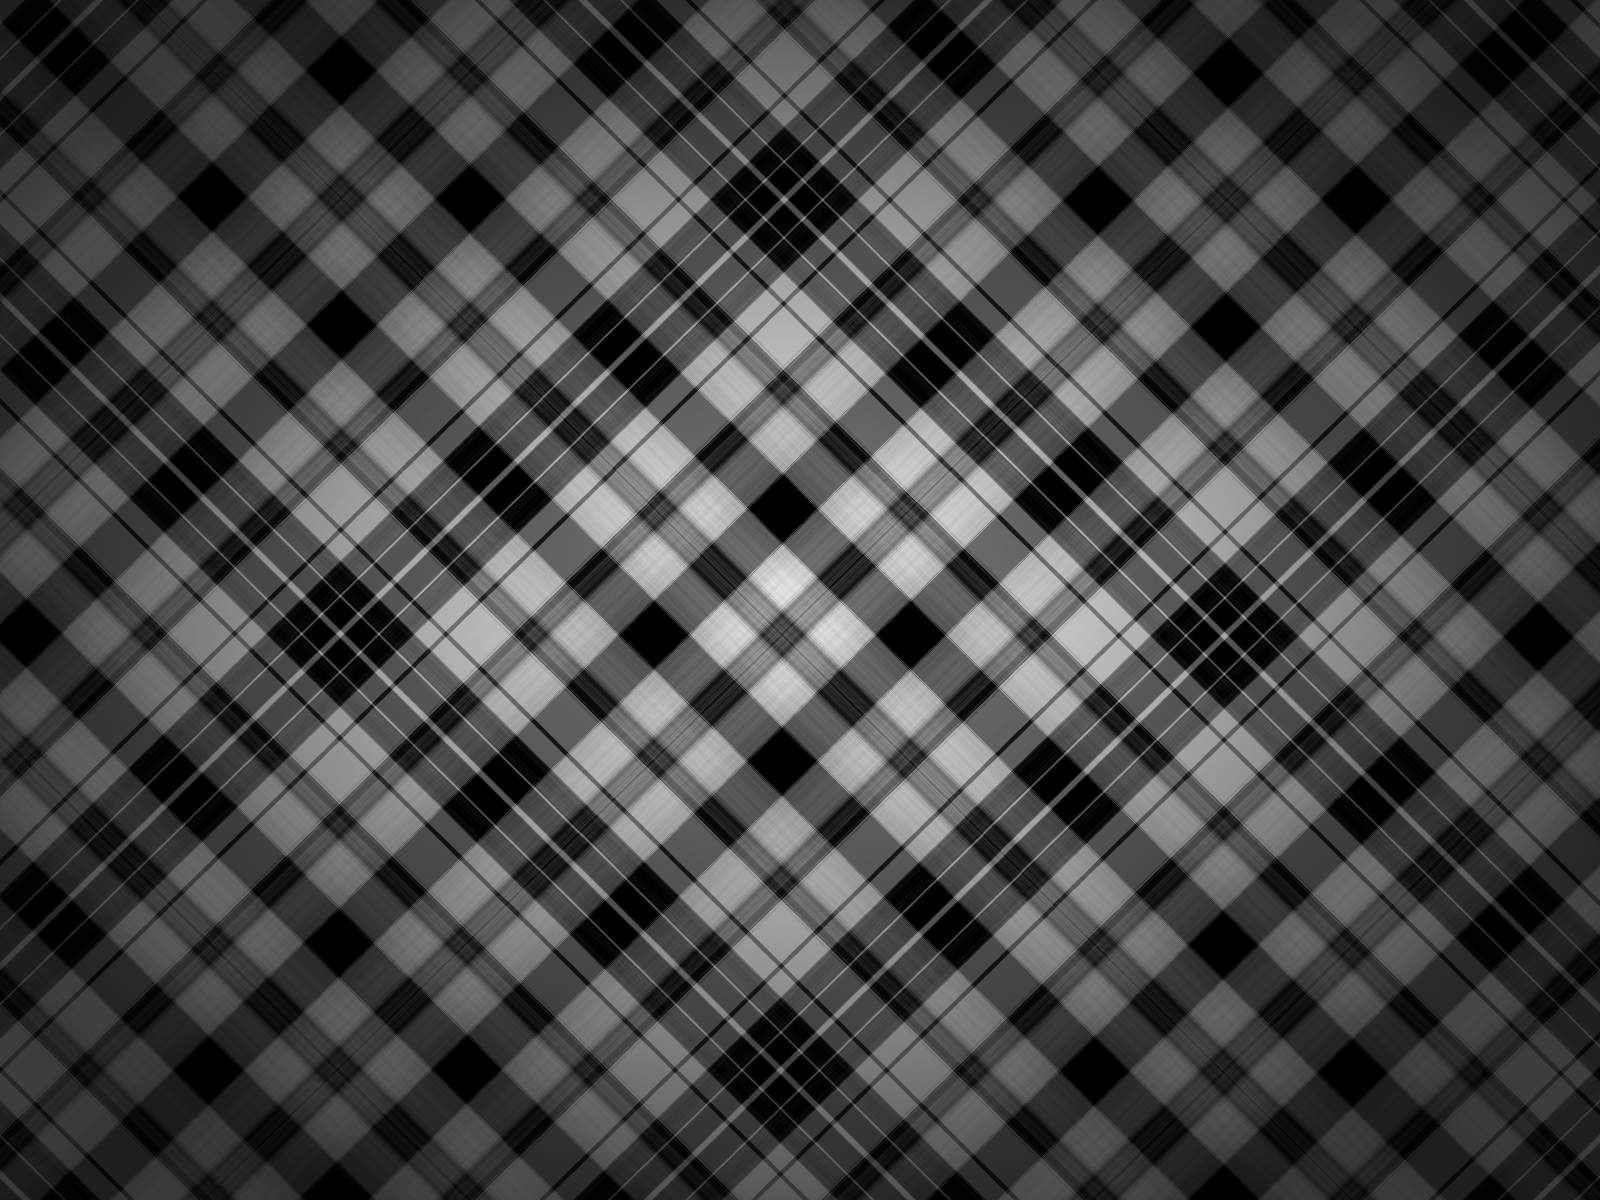 Dark Pattern HD Images Wallpaper